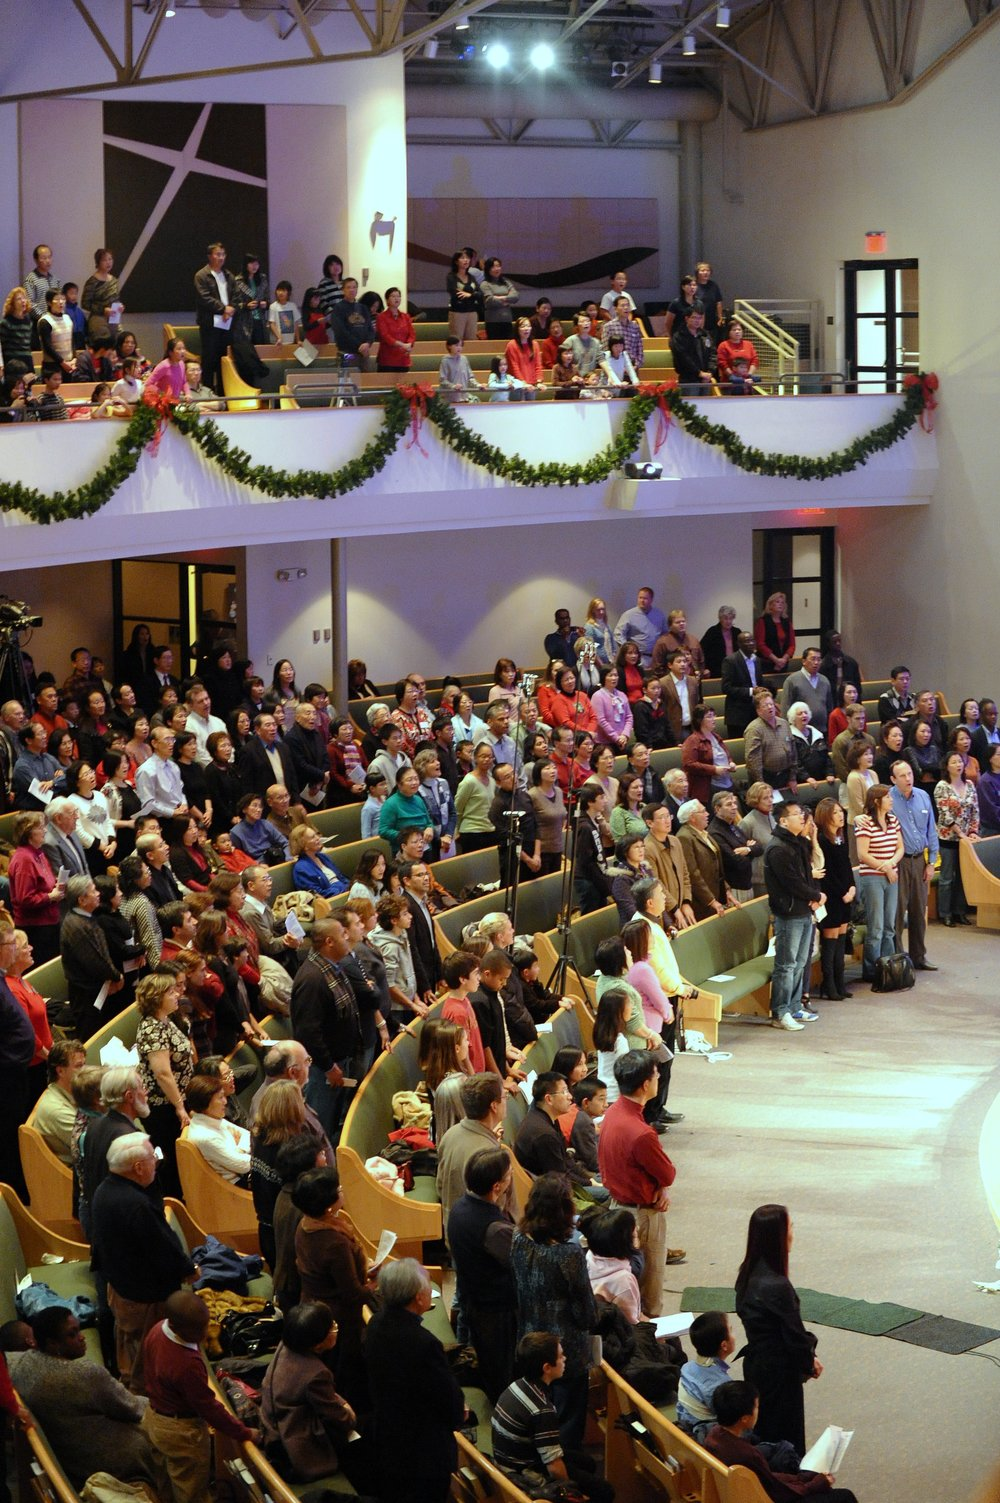 A full house audience enjoying the holiday sing-along